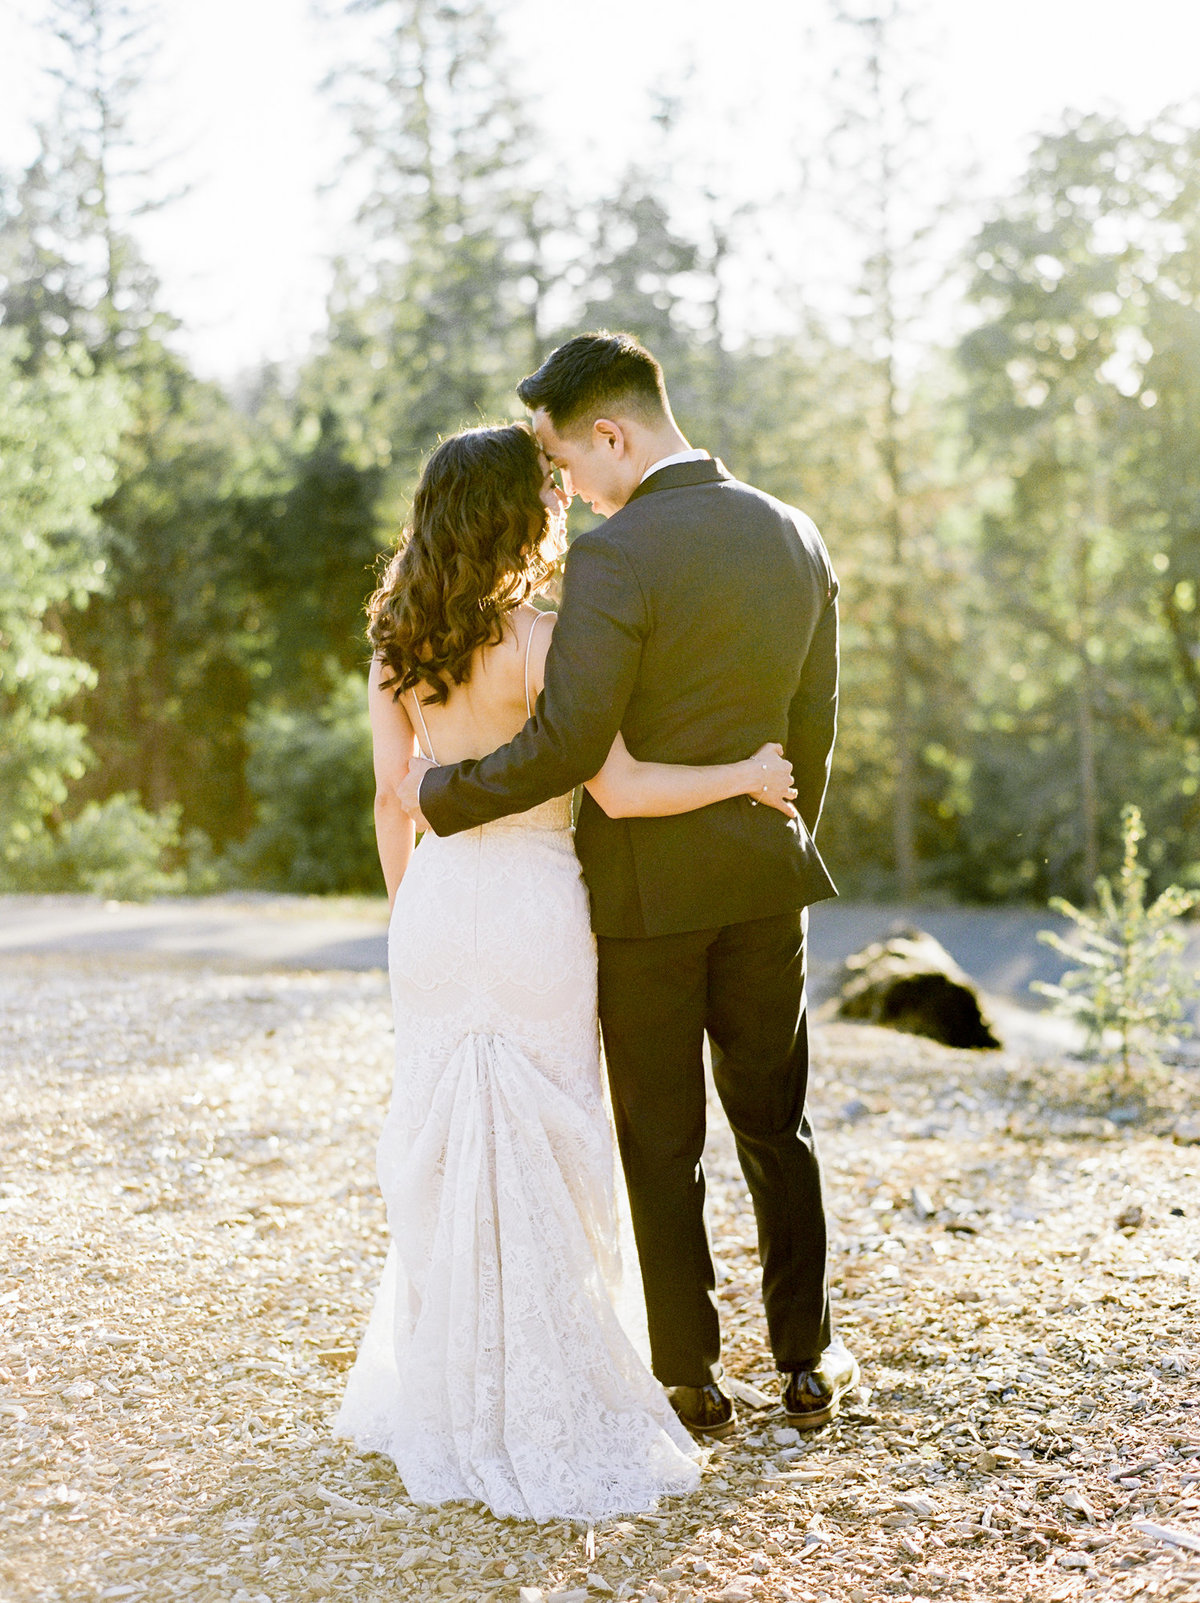 Wedding_CC_JasmineLeePhotography_051